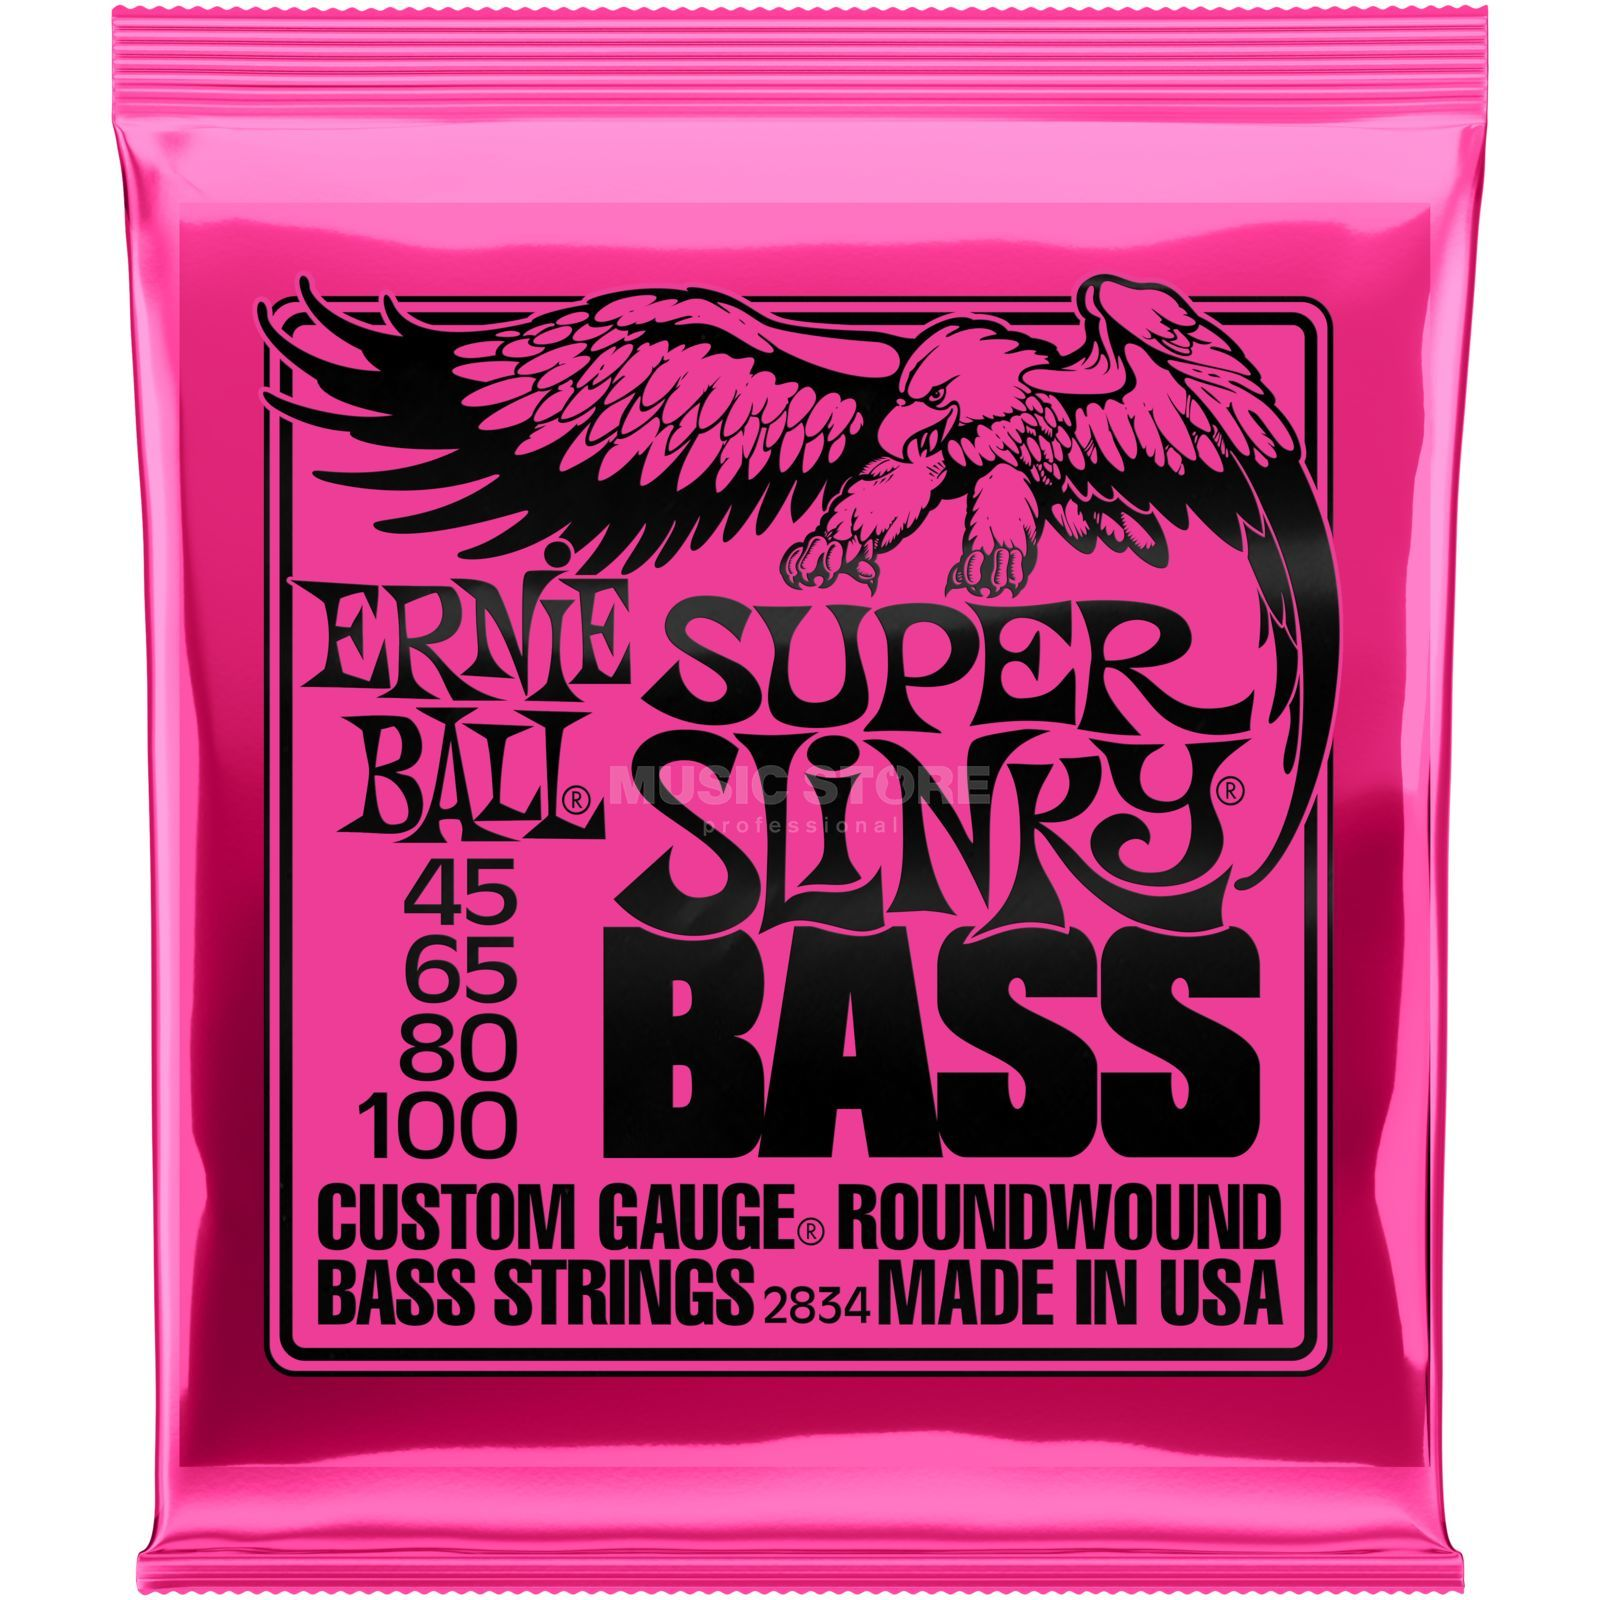 Ernie Ball Bass Strings 45-100 Super Roundwound Long Scale Produktbillede